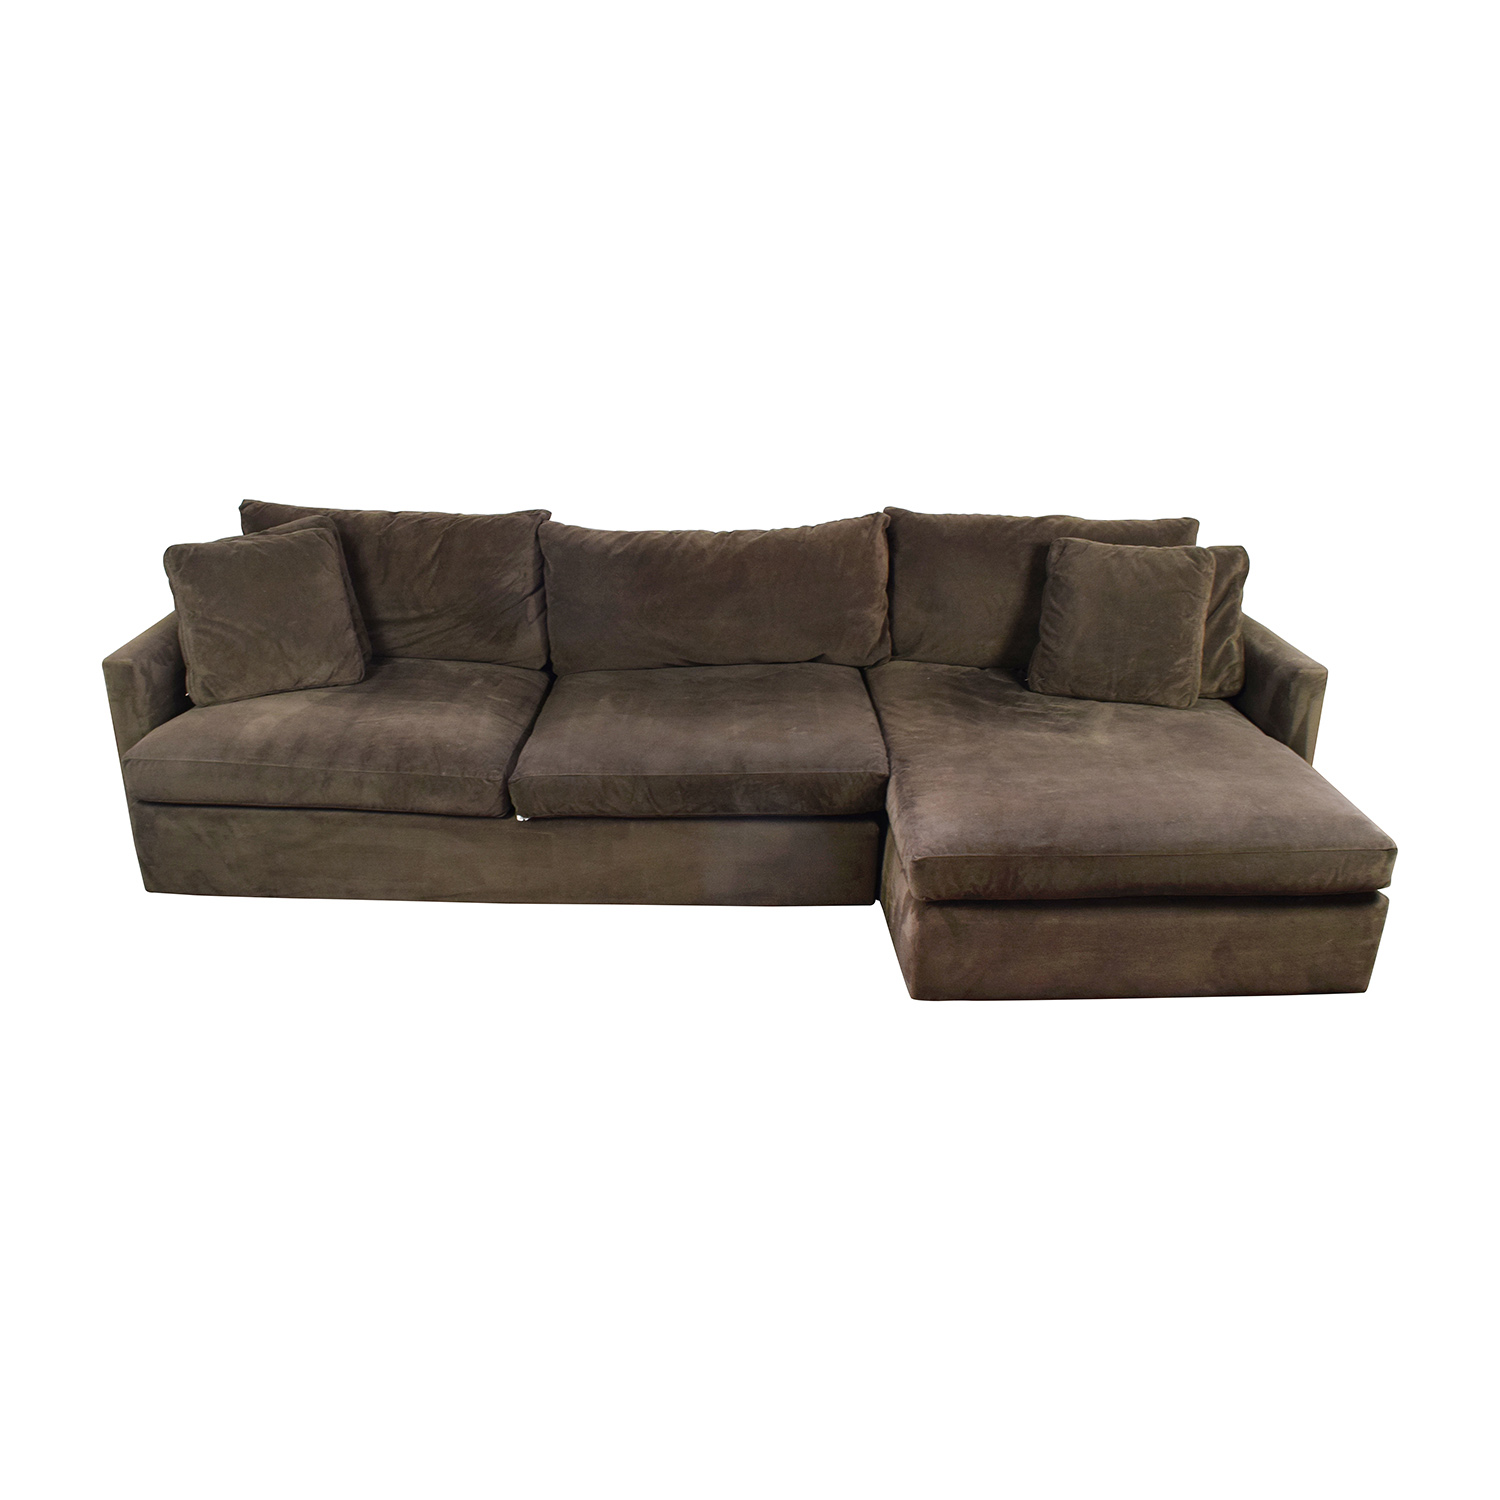 Crate and Barrel Crate & Barrel Brown Left Arm Sectional nj